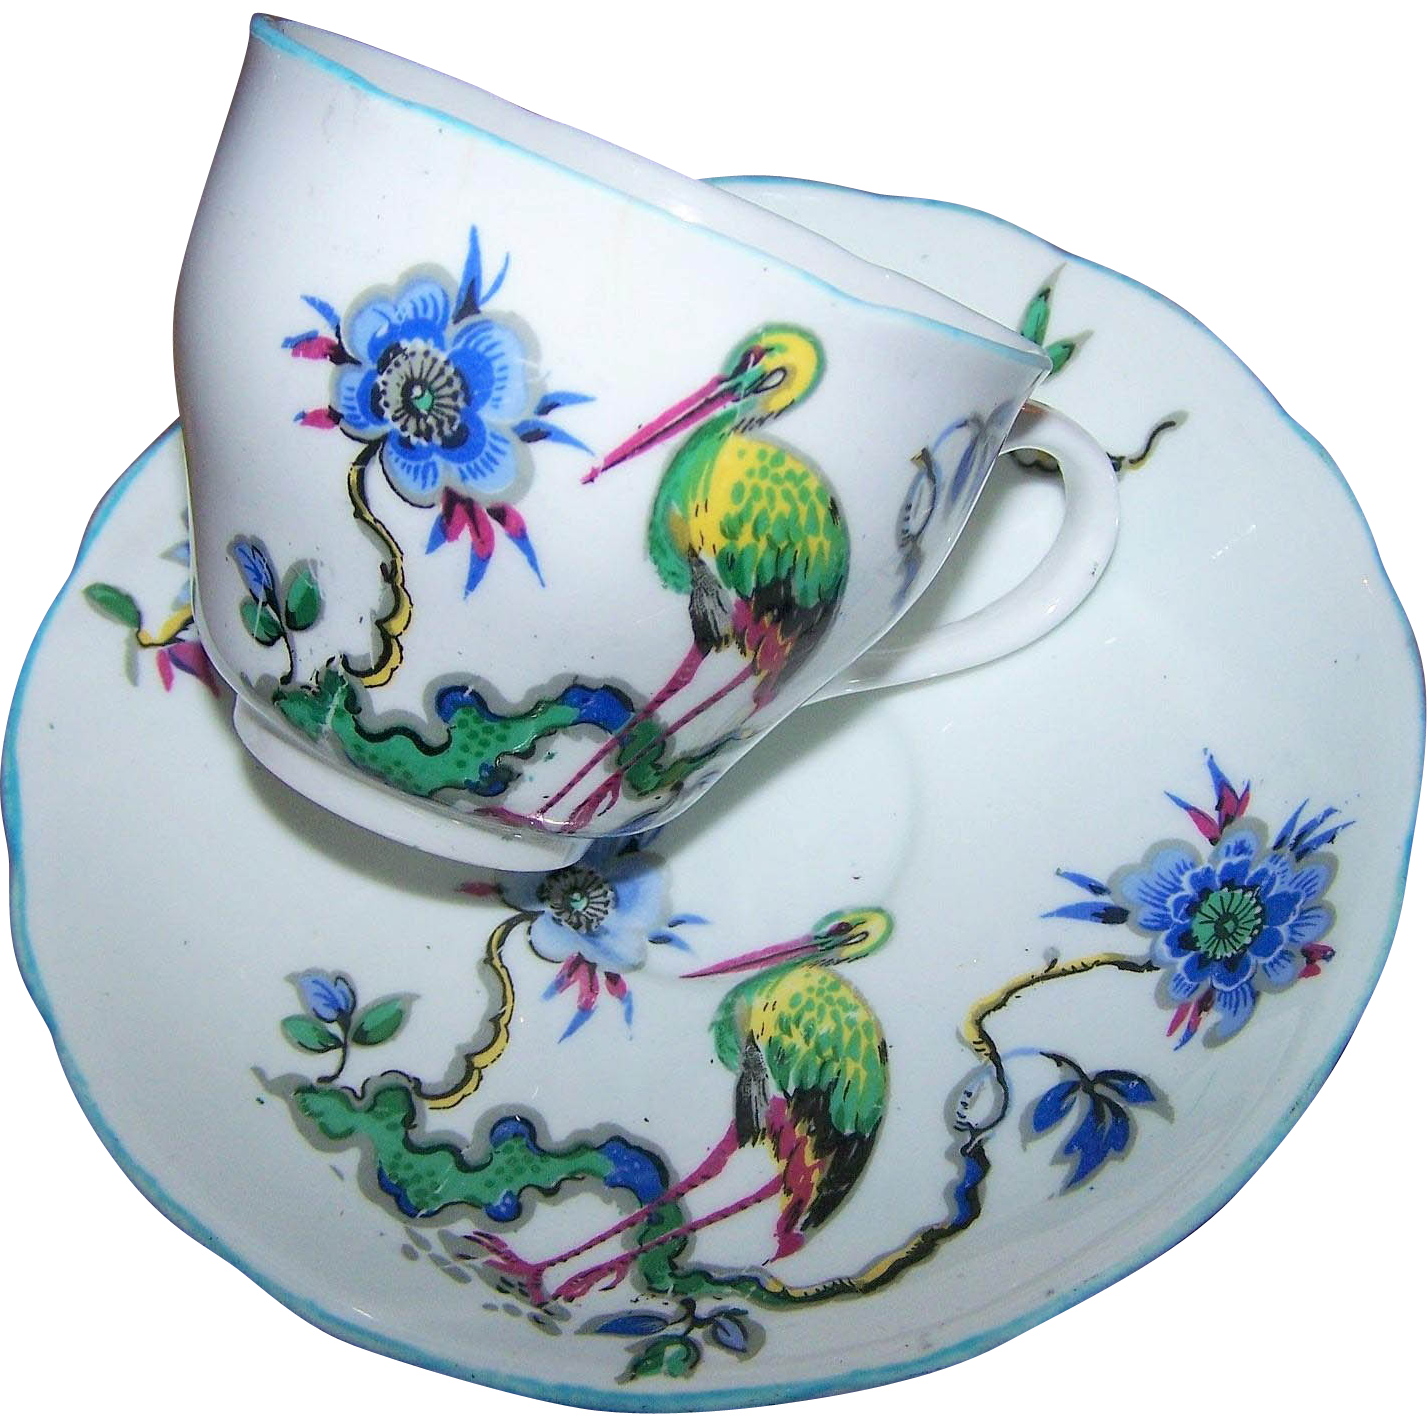 Unique Vintage Stork Bird Tea Cup Saucer Set Guaranteed English Bone China